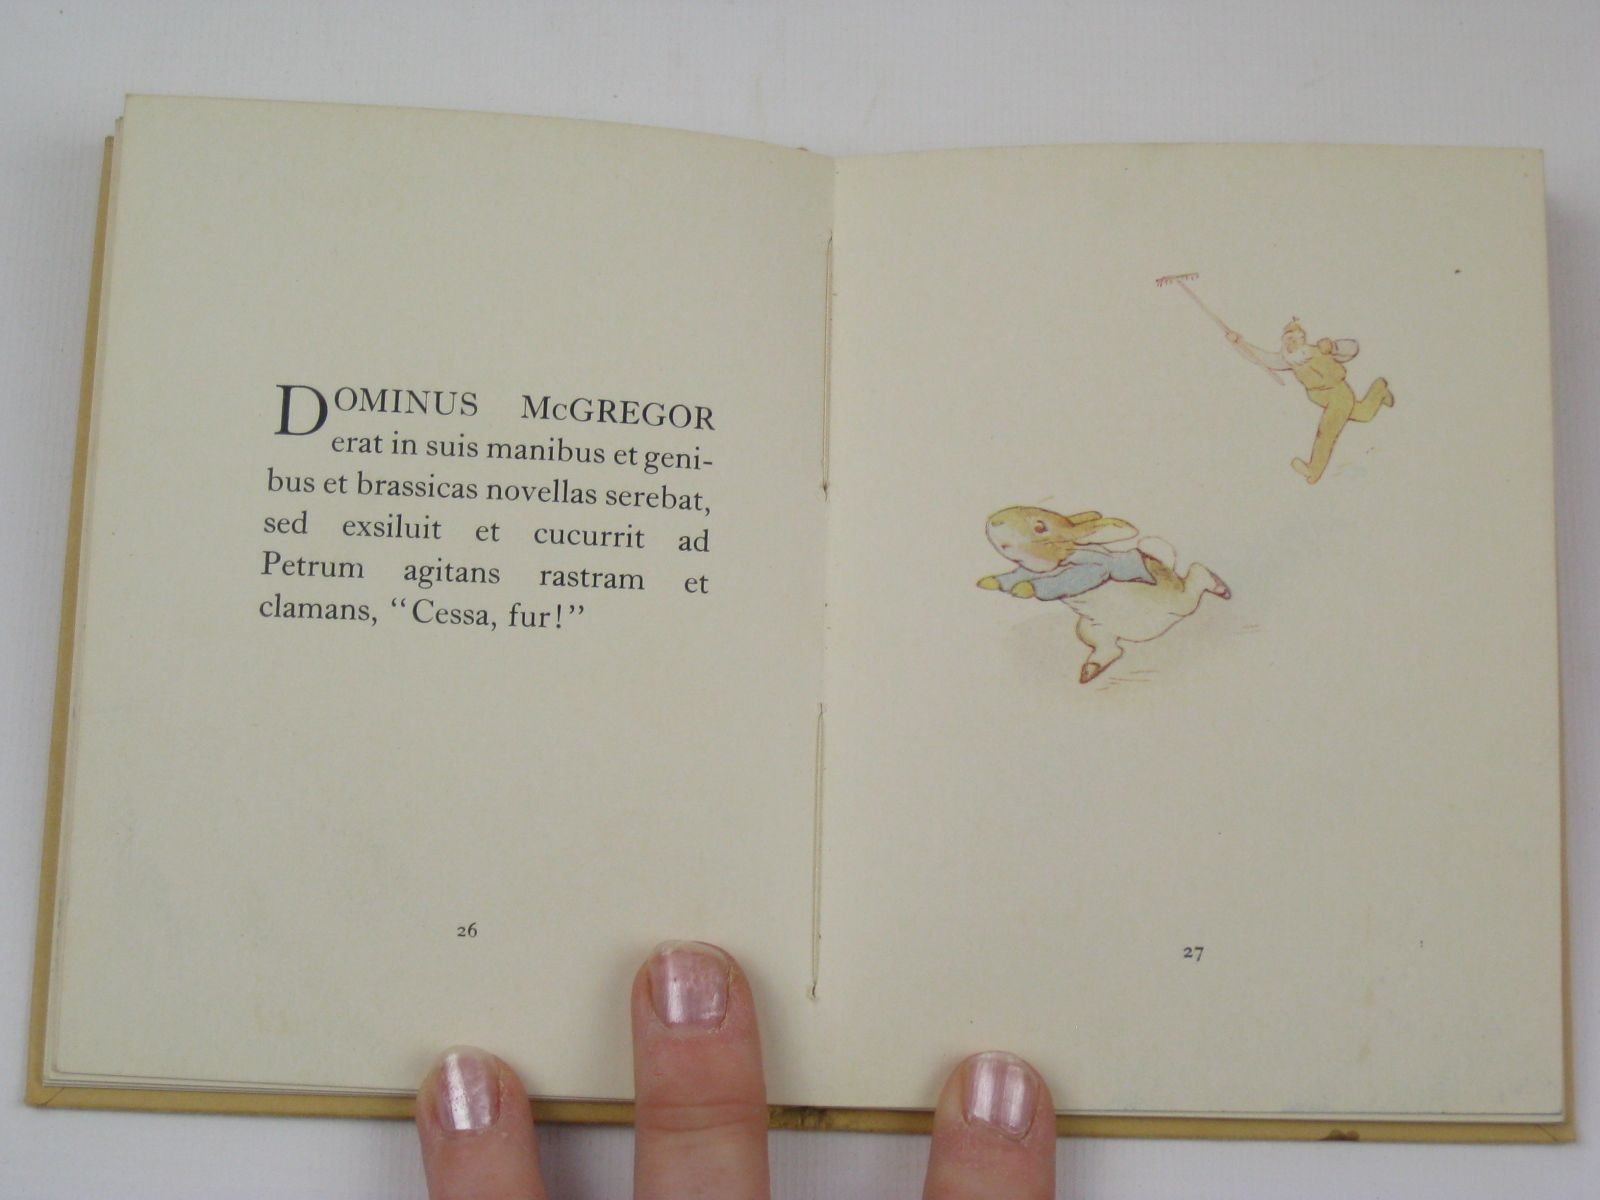 Photo of FABULA PETRO CUNICULO written by Potter, Beatrix Walkeri, E. Perotis illustrated by Potter, Beatrix published by Frederick Warne & Co Ltd. (STOCK CODE: 1316771)  for sale by Stella & Rose's Books